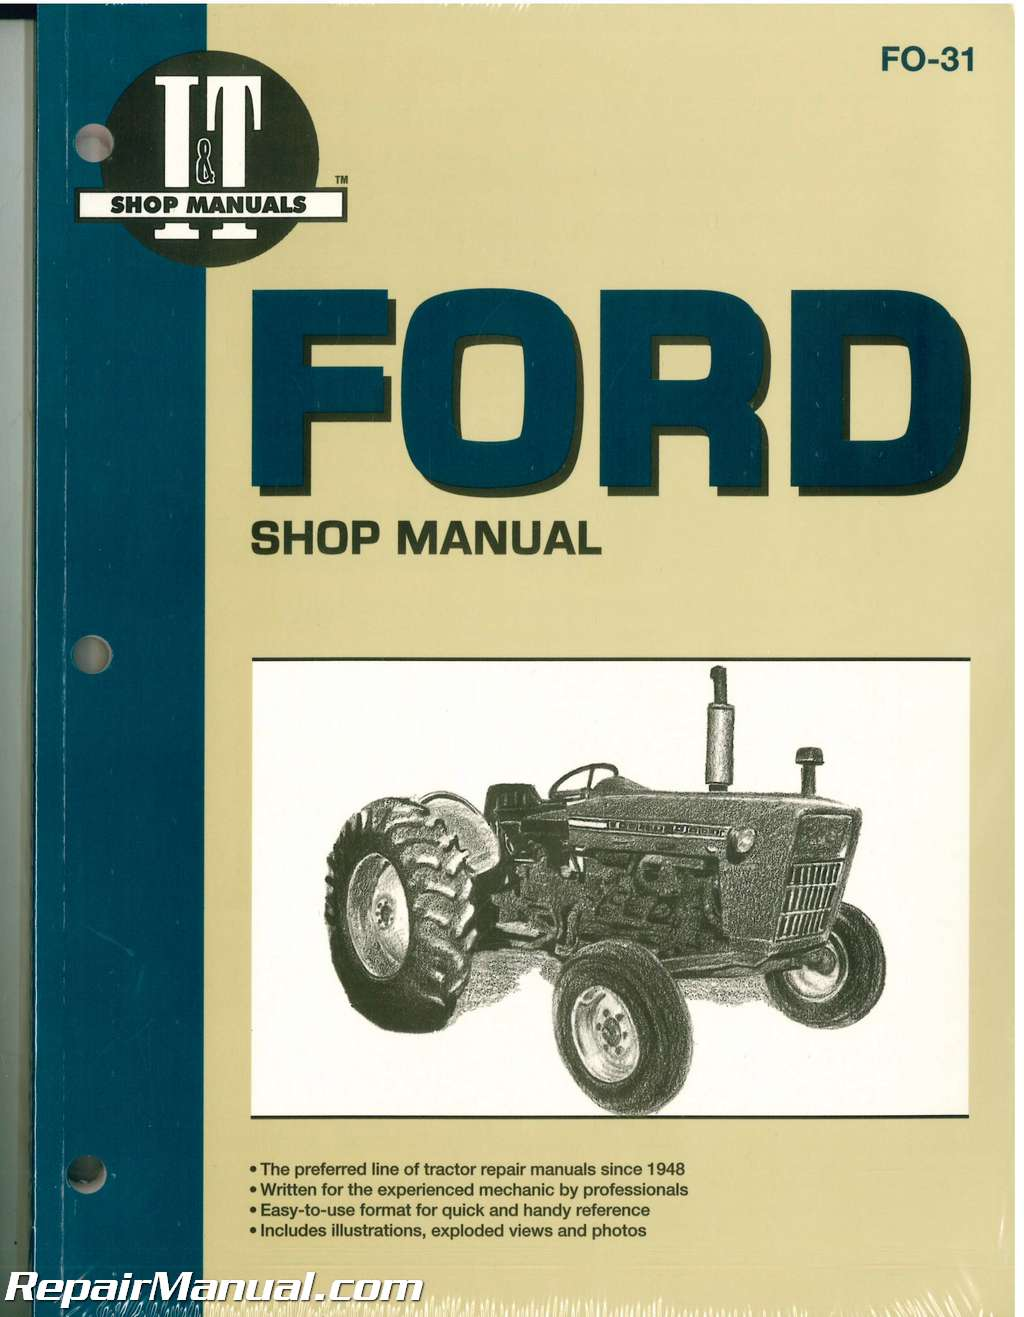 Ford New Holland 2000, 3000, 4000 3-Cylinder Pre 1975 Tractor Repair Manual